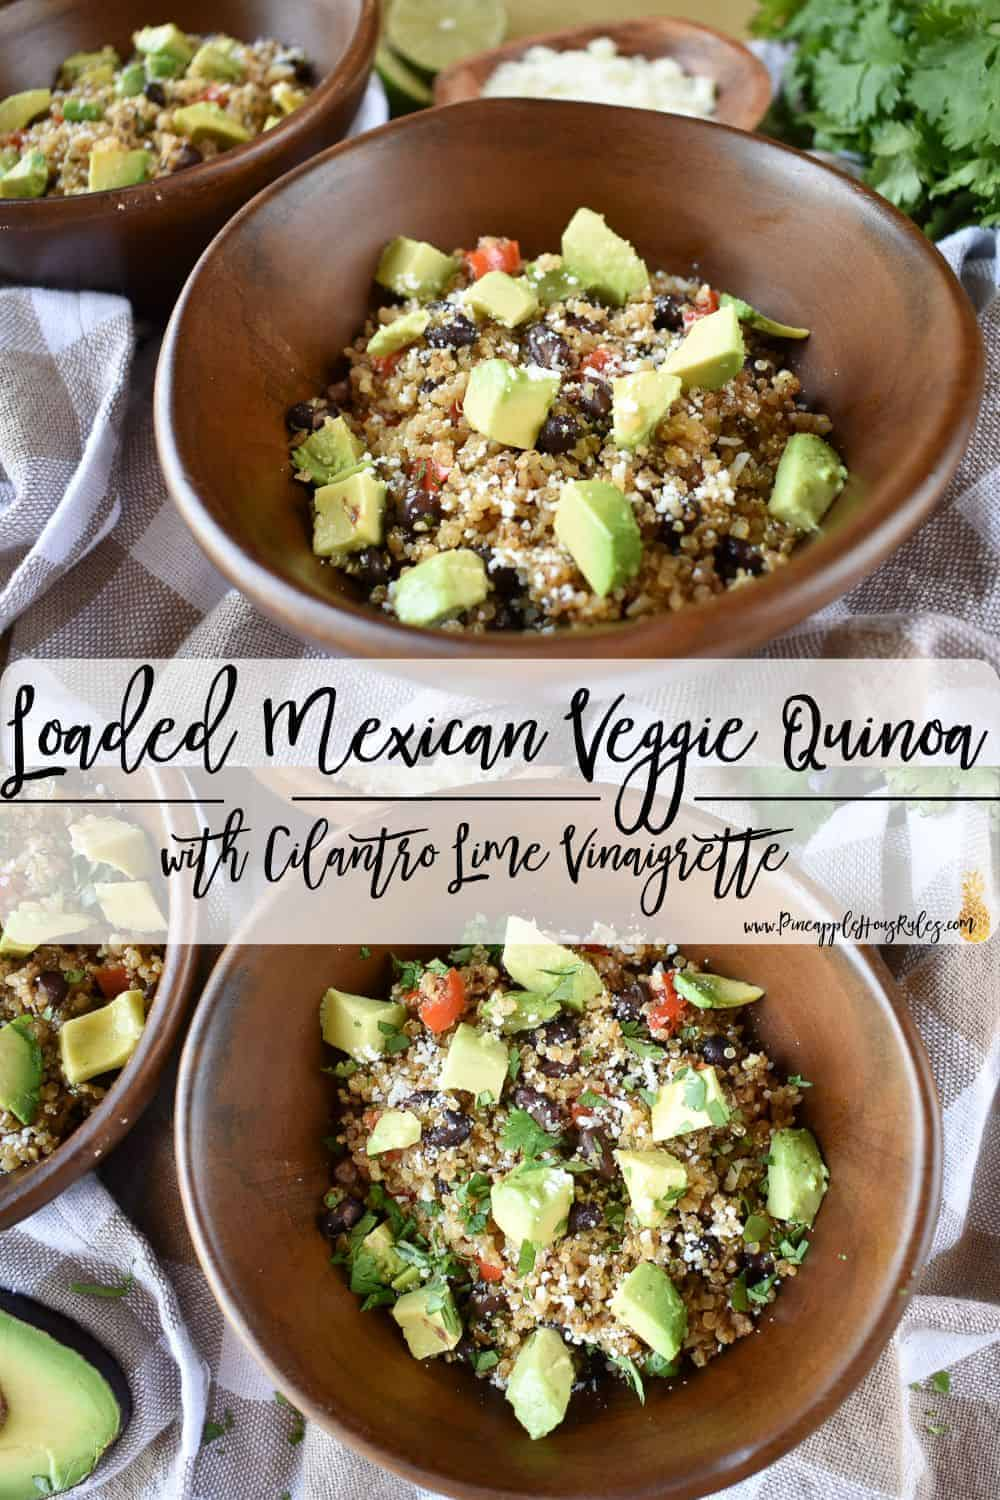 Loaded-Mexican-Veggie-Quinoa-with-Cilantro-Lime-Vinaigrette-Pinterest